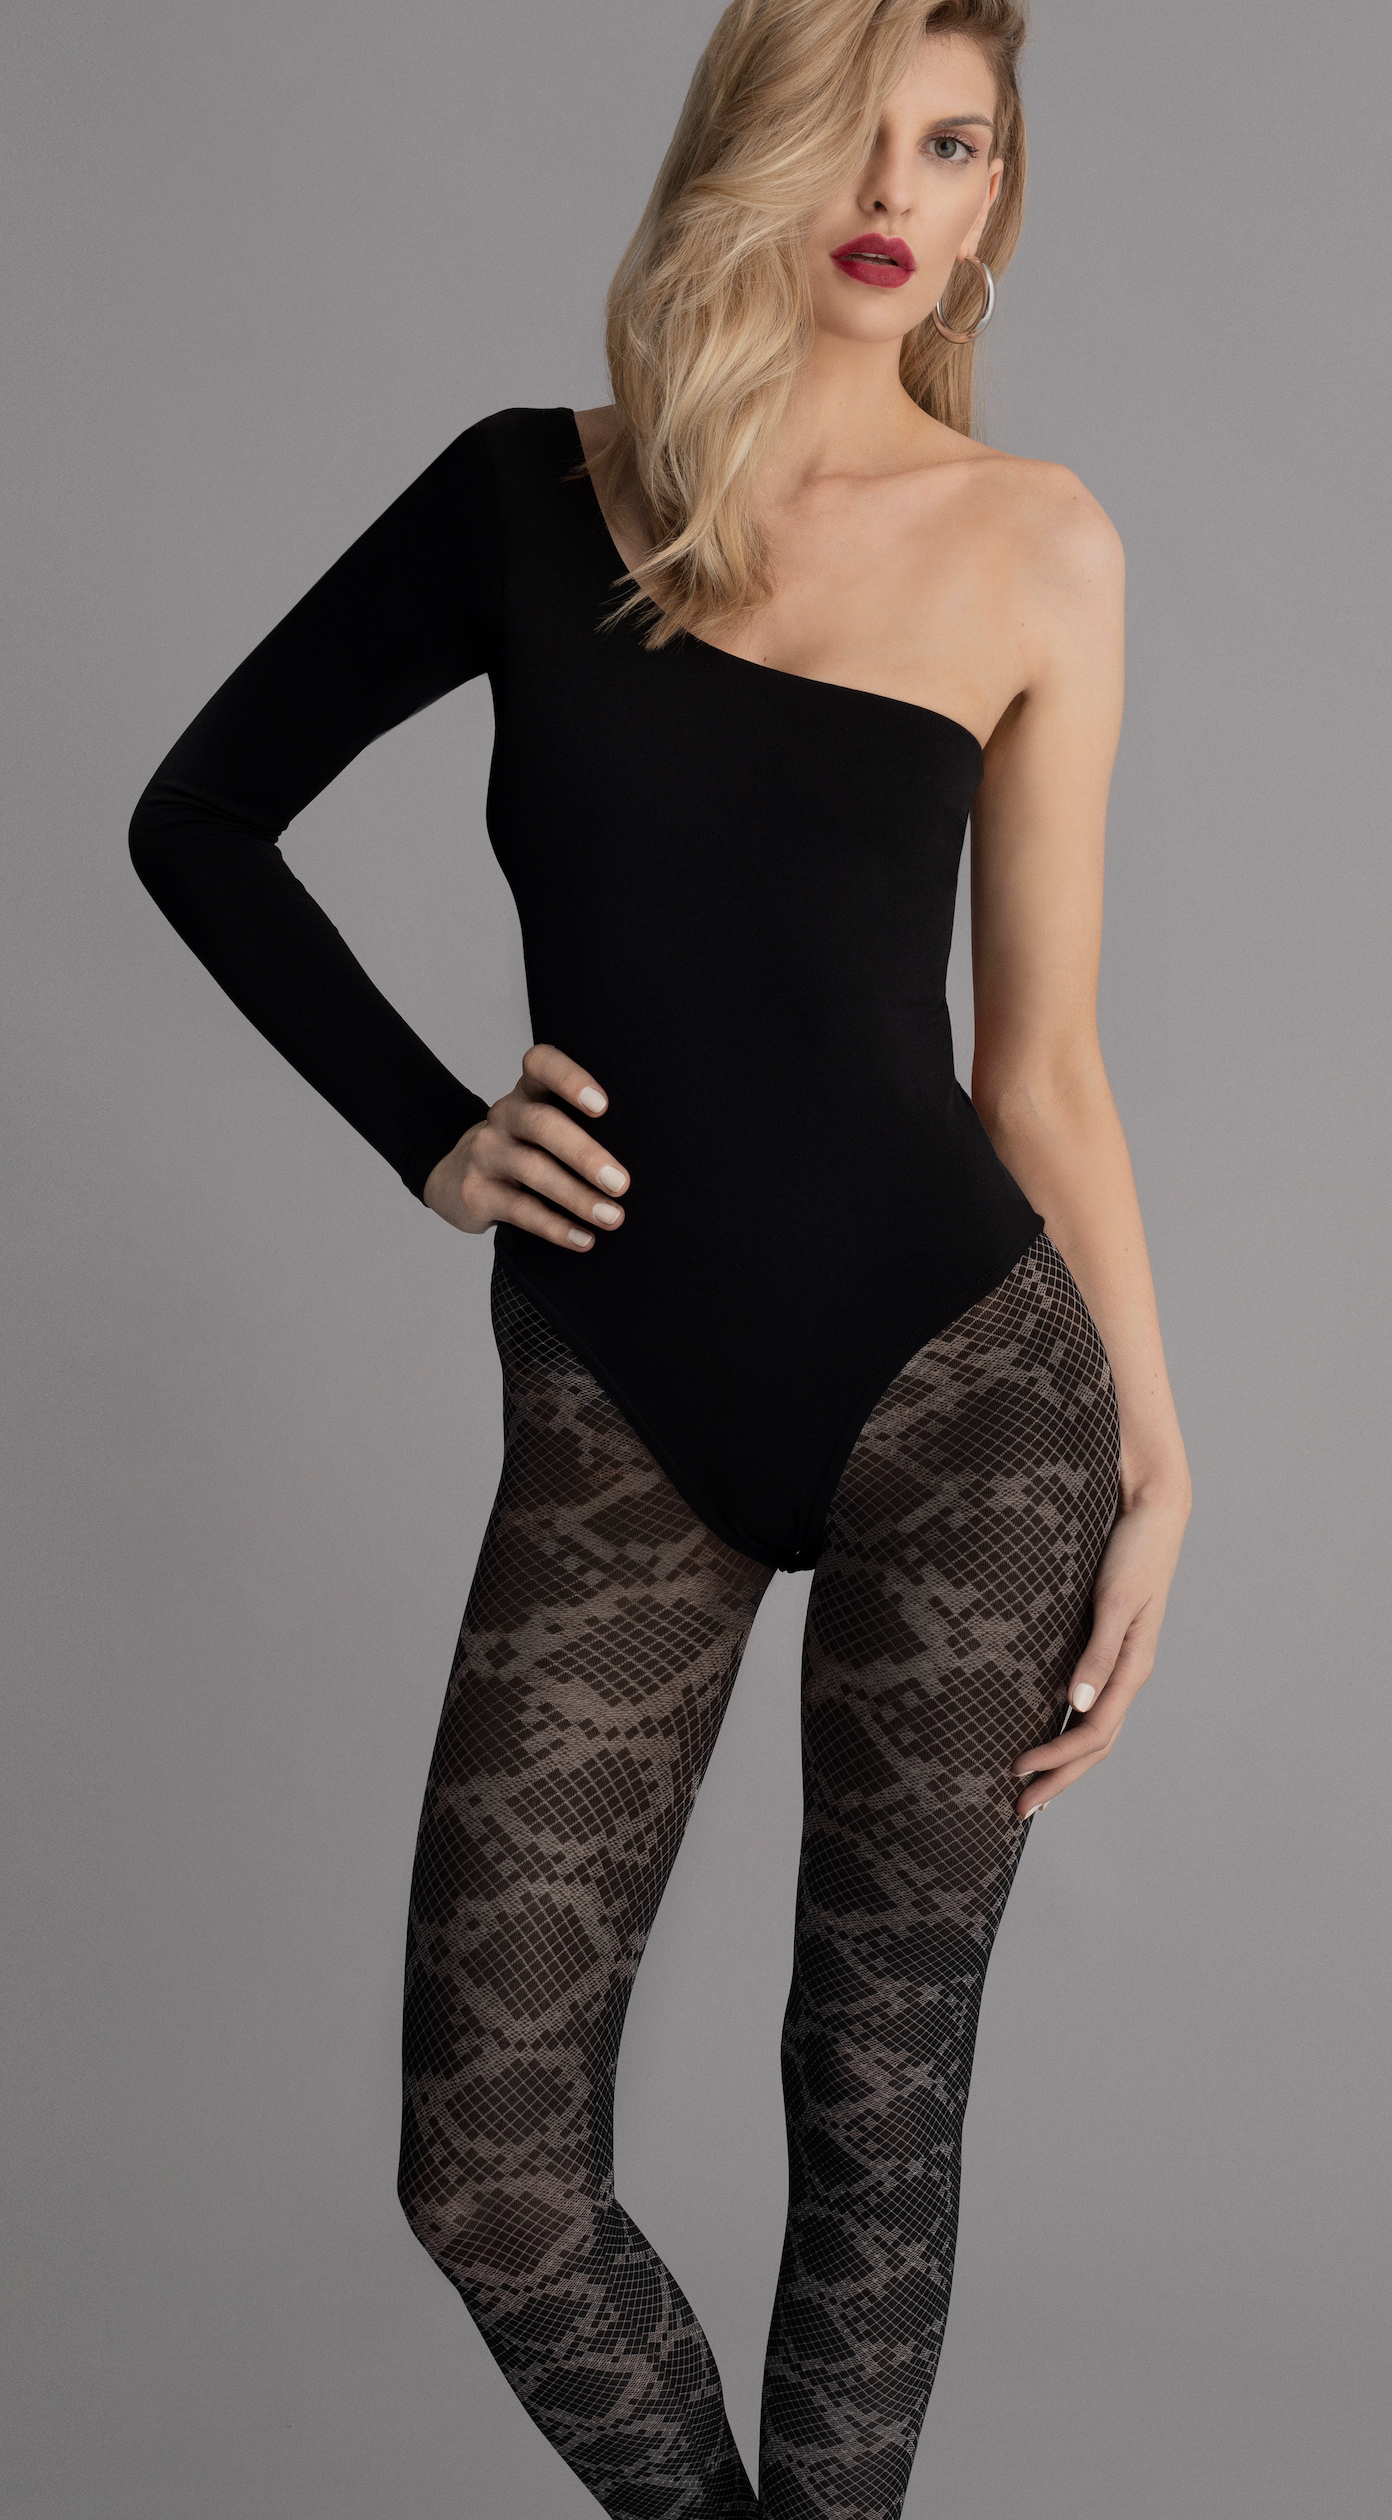 Fiore: Blotched Snake Tights FIO_CITYJUNGLE